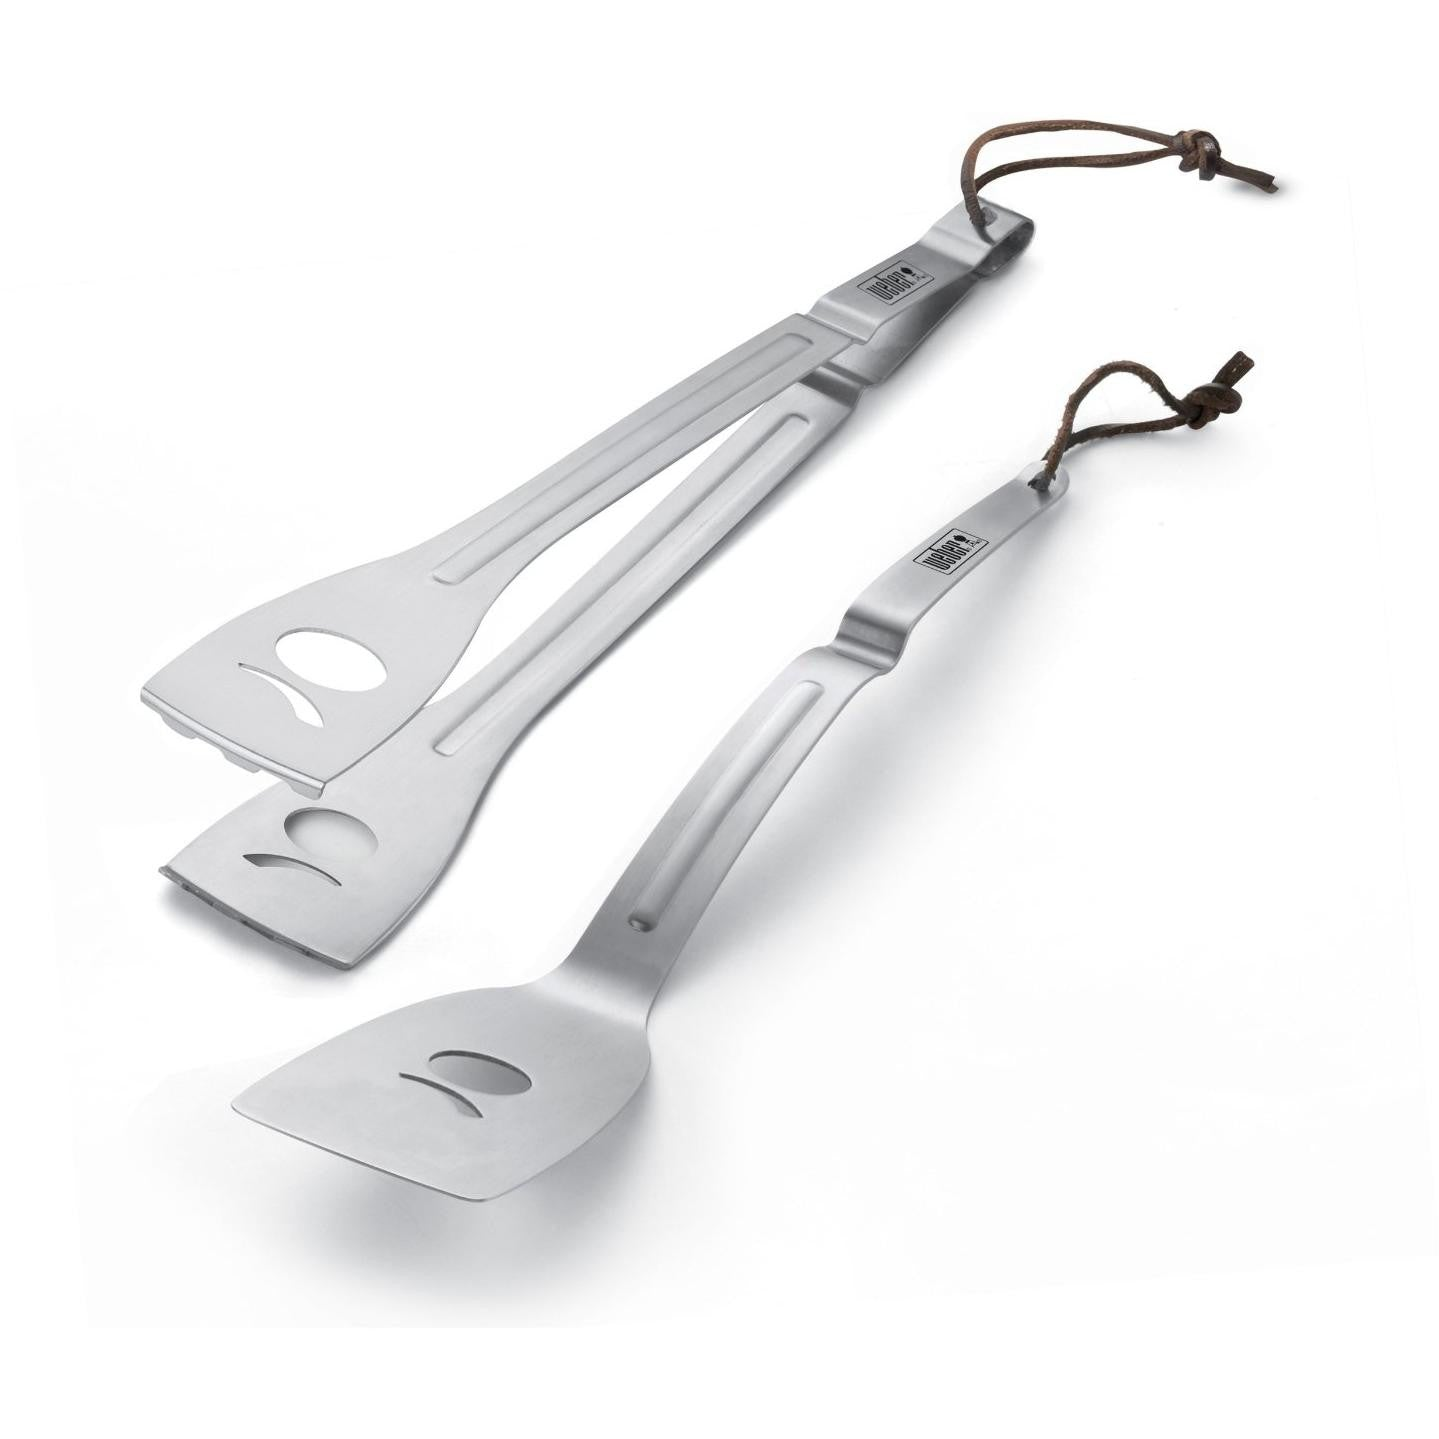 Weber 6515 Q Stainless Steel BBQ Tool Set - 2-Pieces